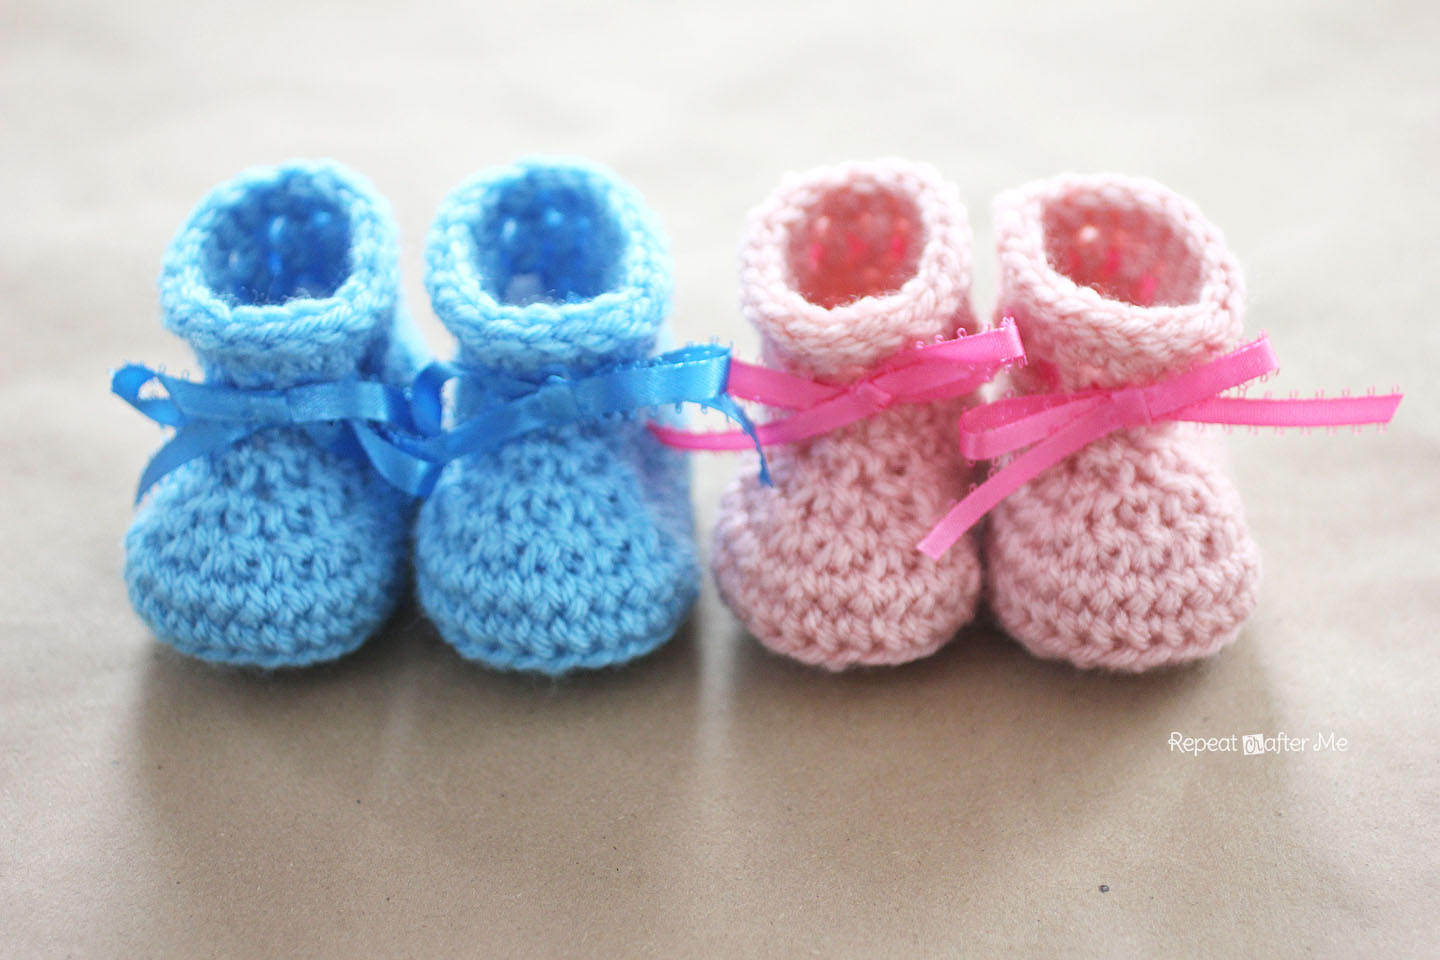 Crochet newborn baby booties pattern repeat crafter me crochet newborn baby booties pattern bankloansurffo Choice Image